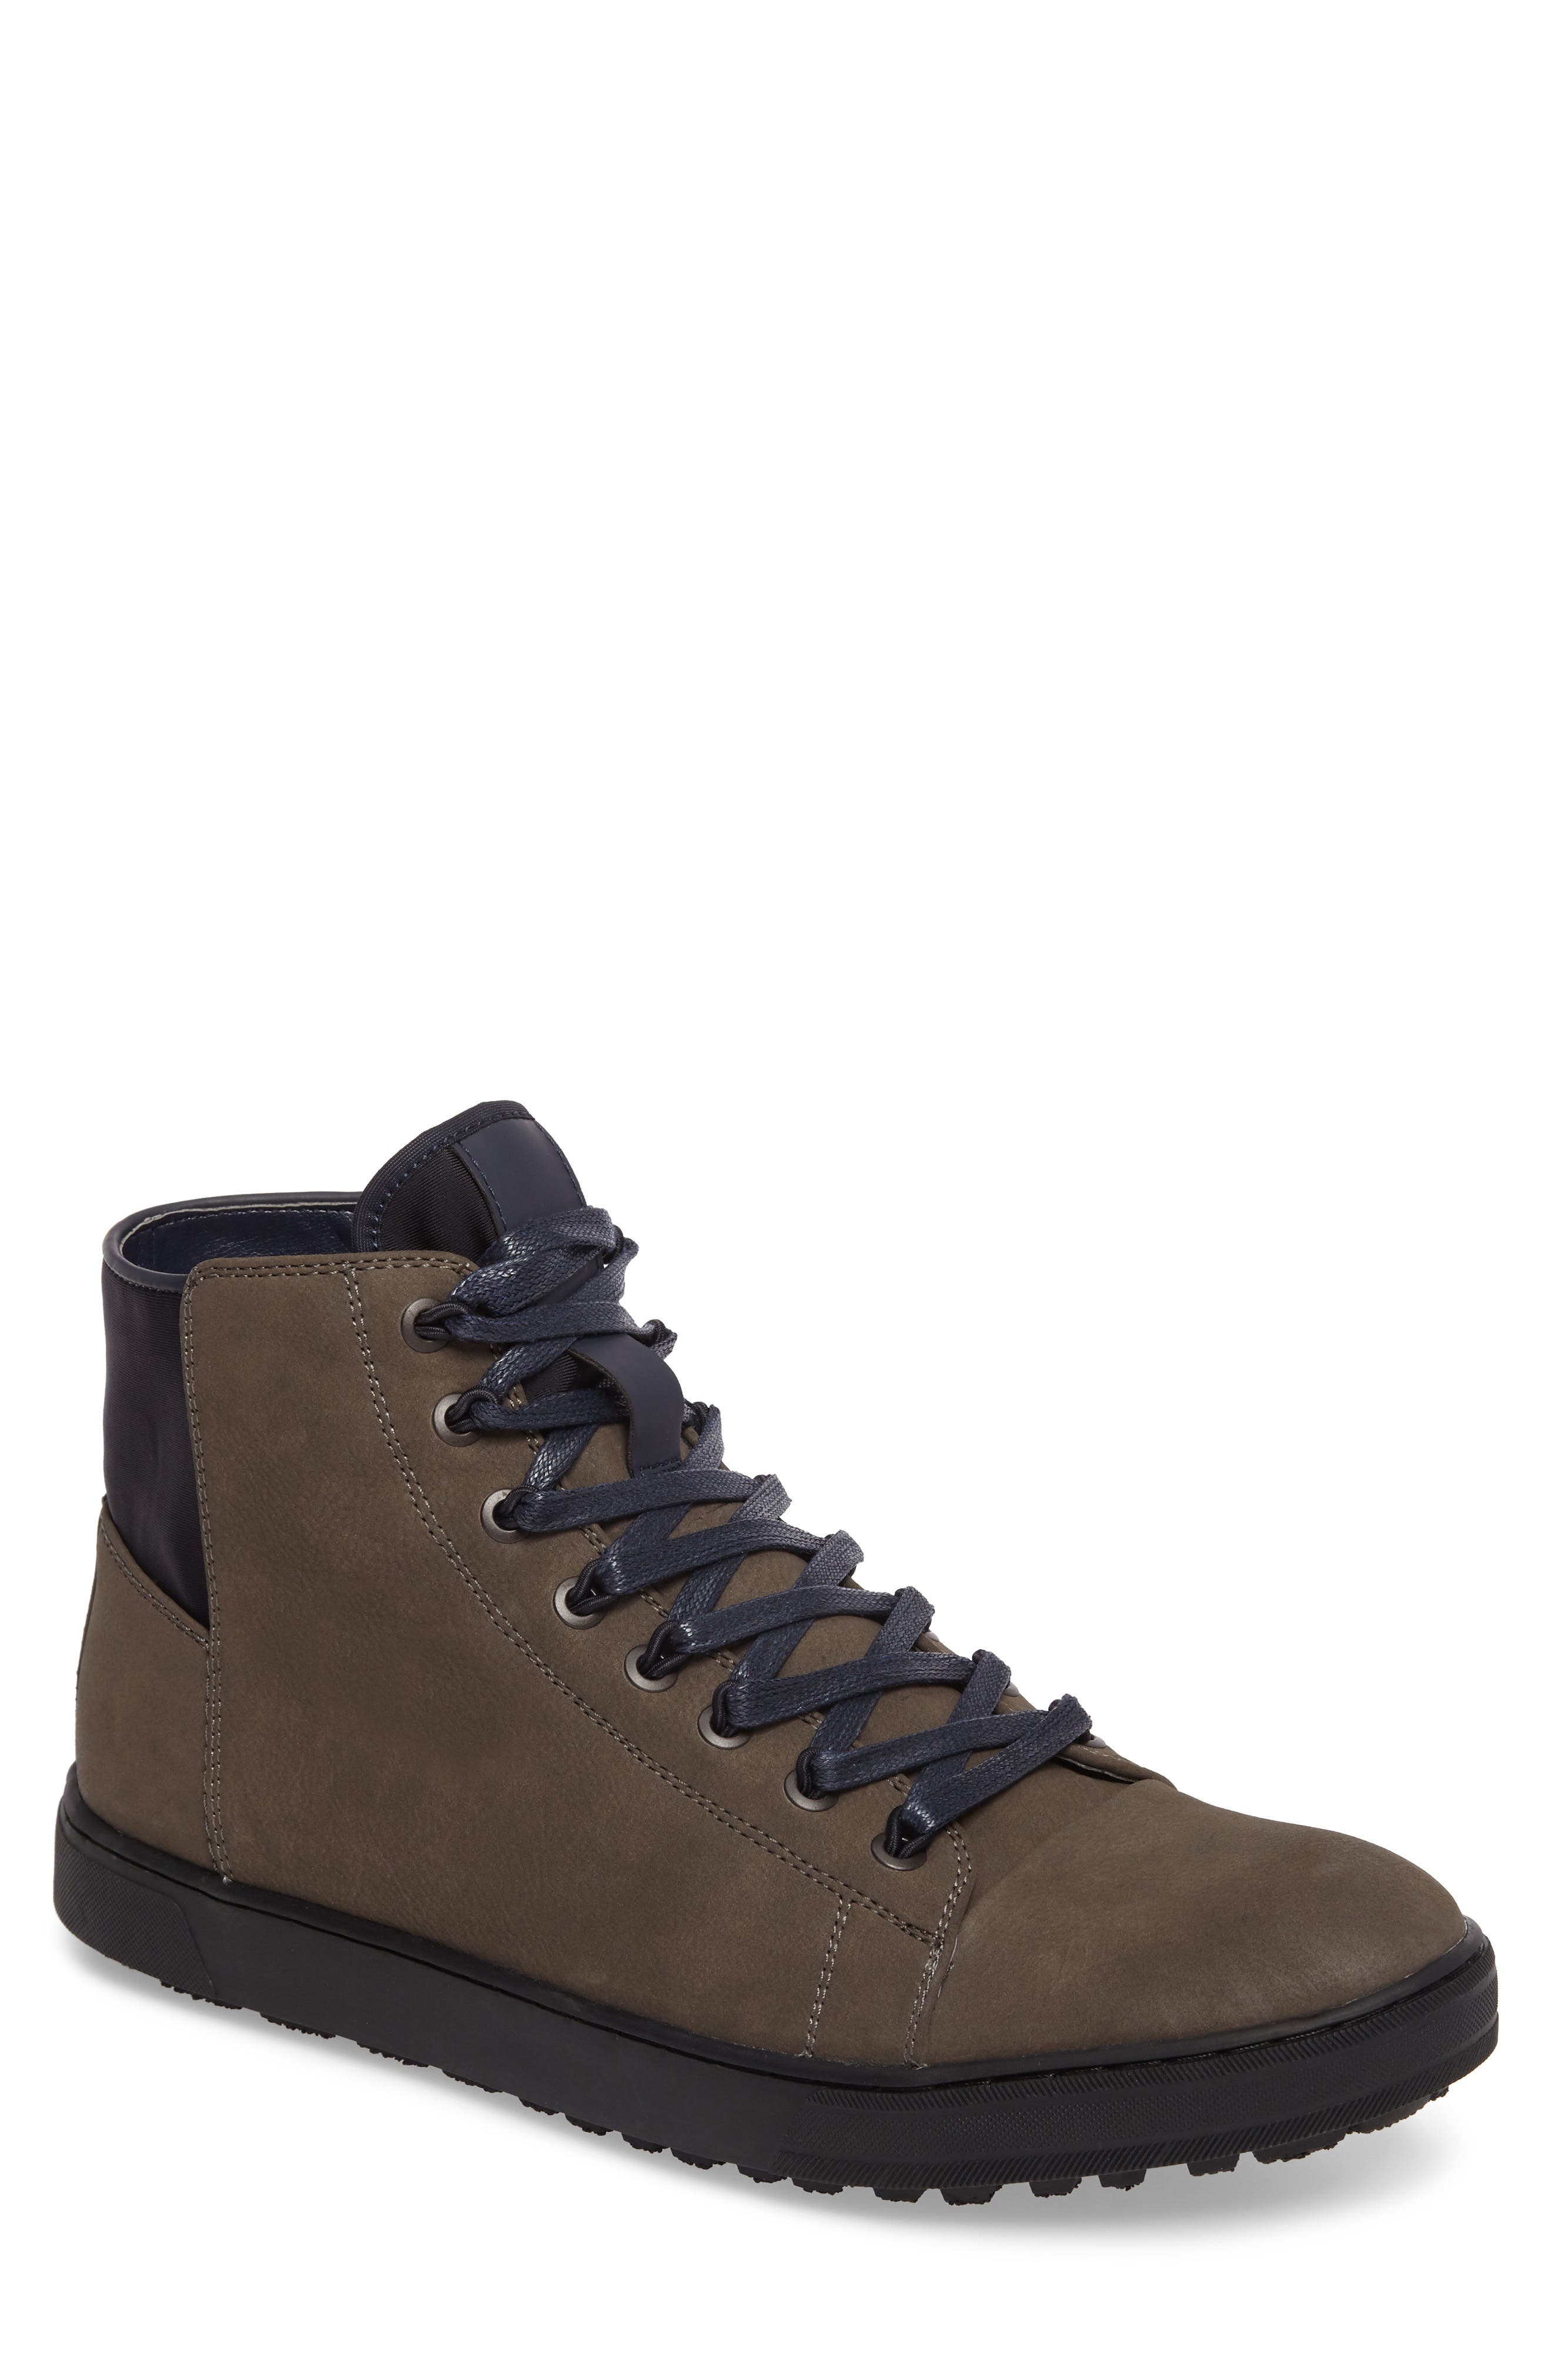 Kenneth Cole Reaction High-Top Sneaker,                         Main,                         color, Dark Taupe